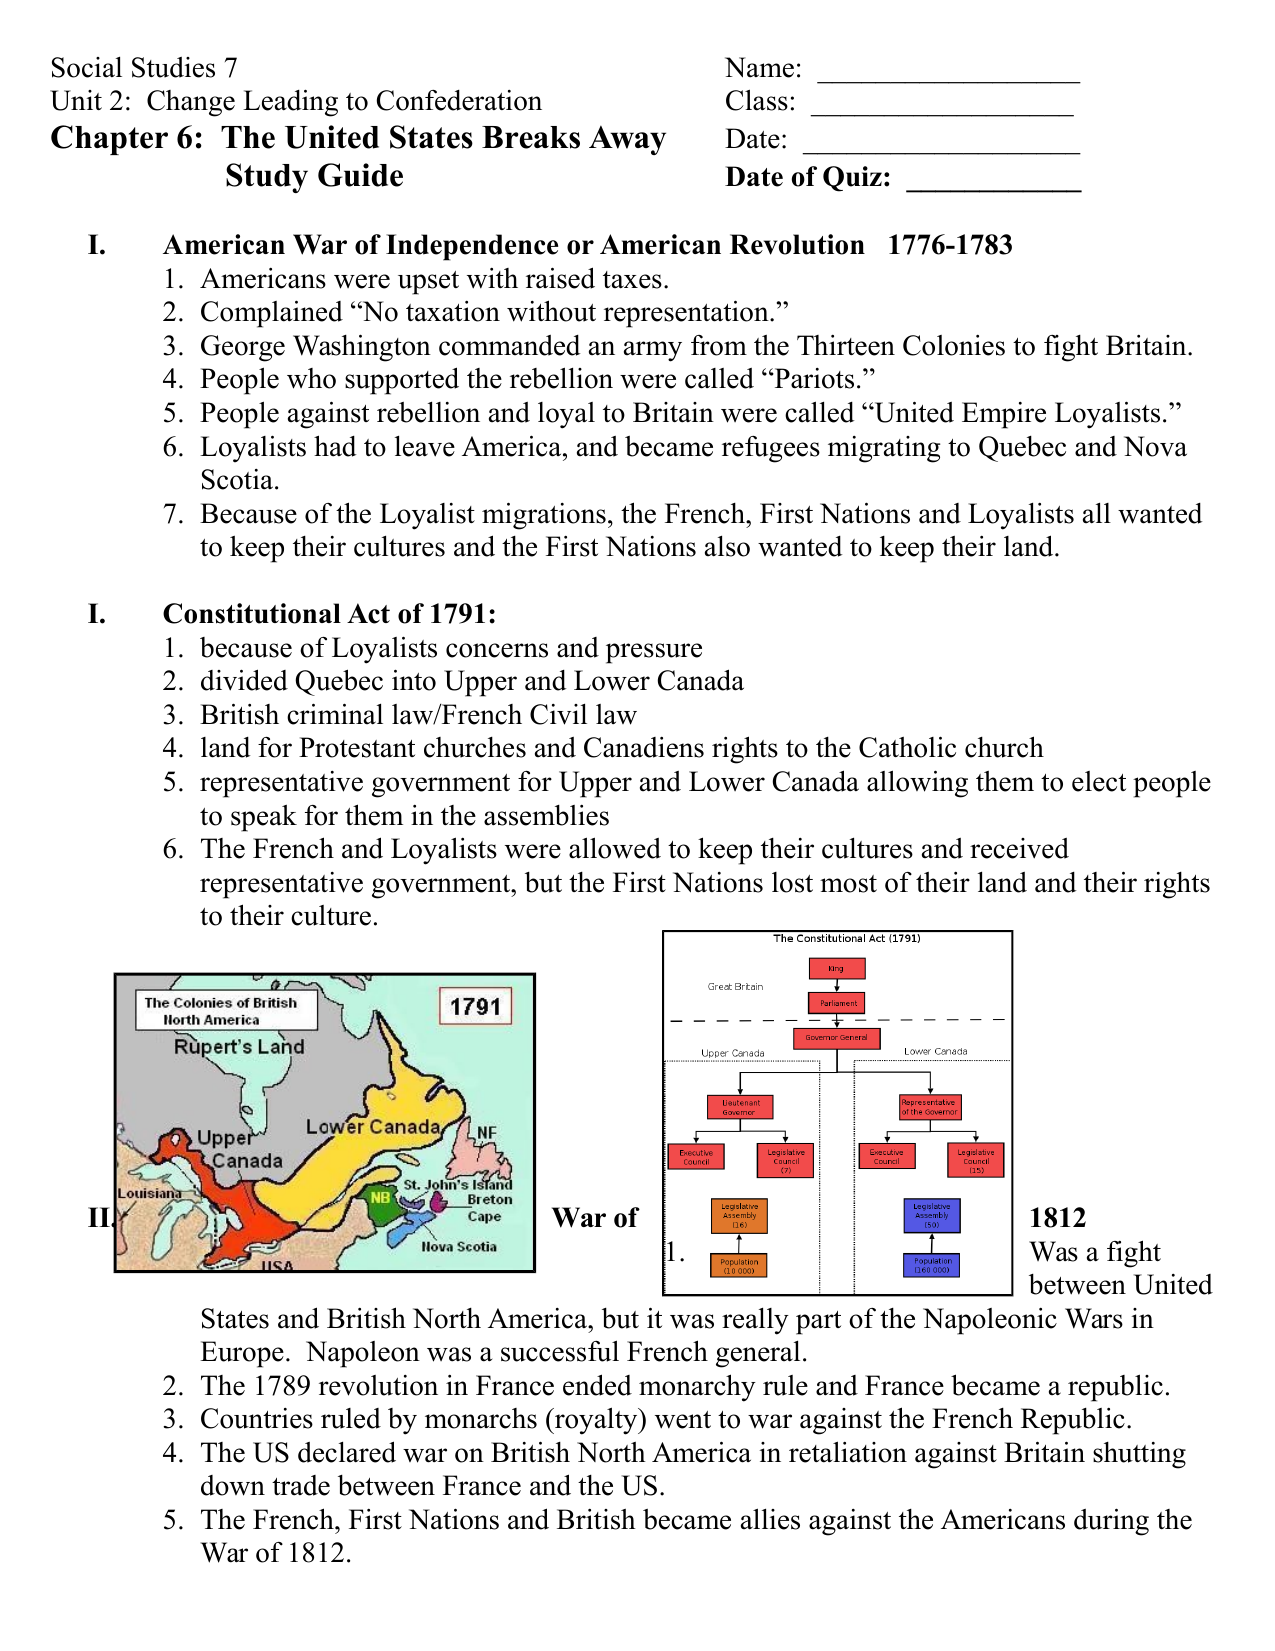 medium resolution of Our Canada Chapter 6 Study Guide Resource Preview   Study guide